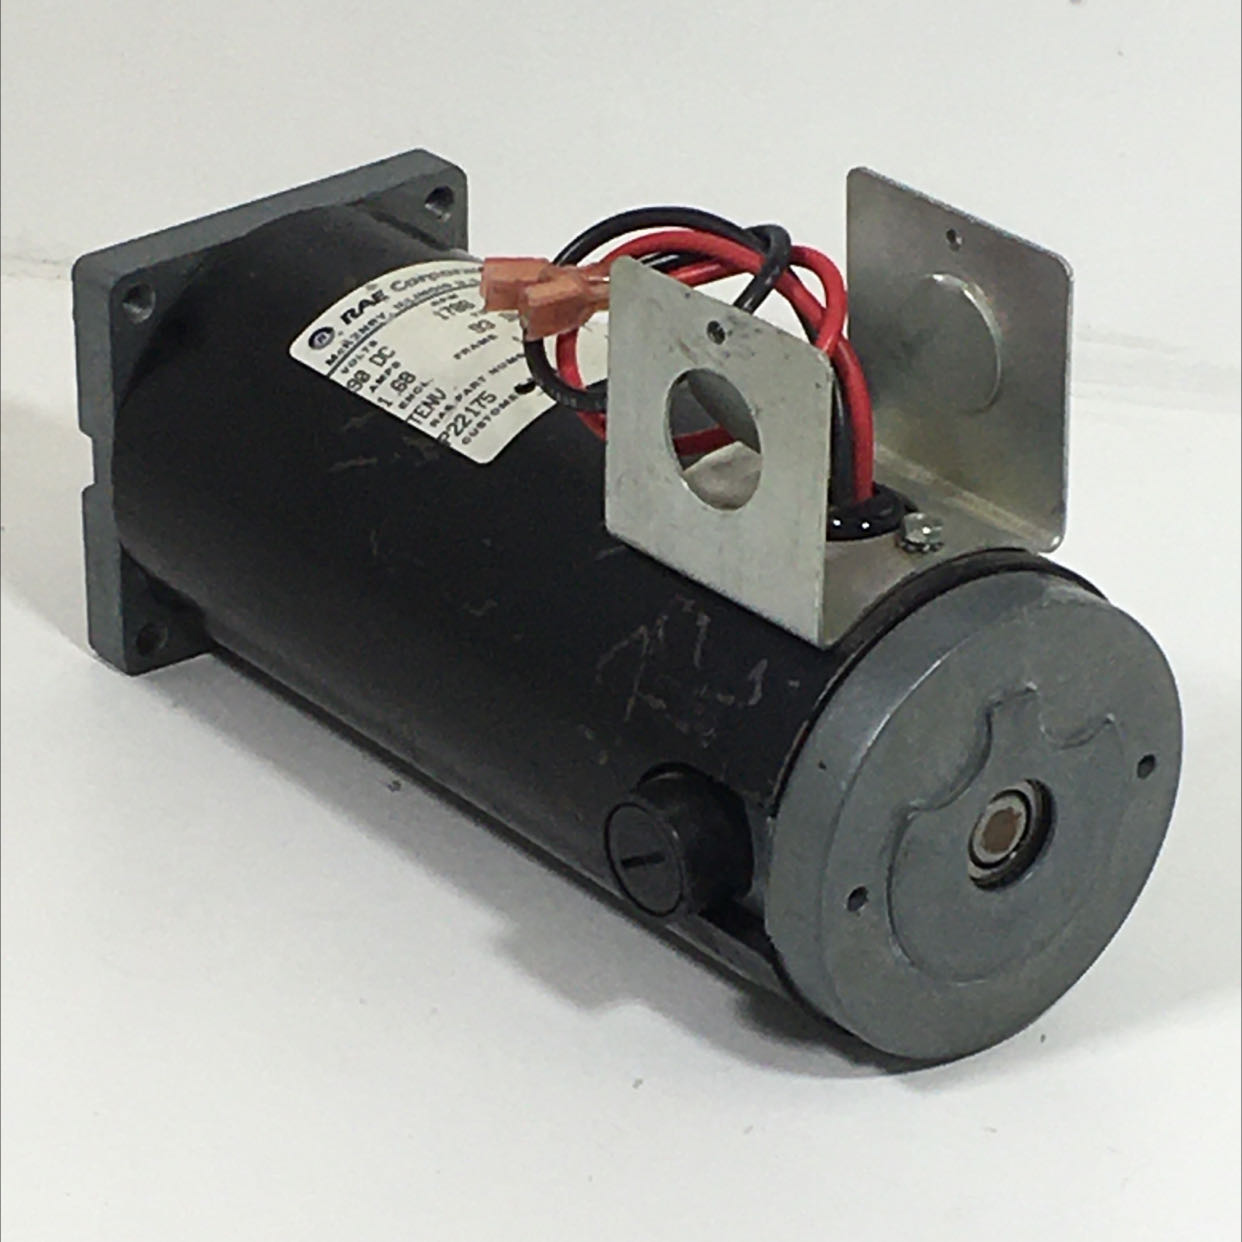 RAE Corporation P22175 DC Motor 90 VDC 1.68 A